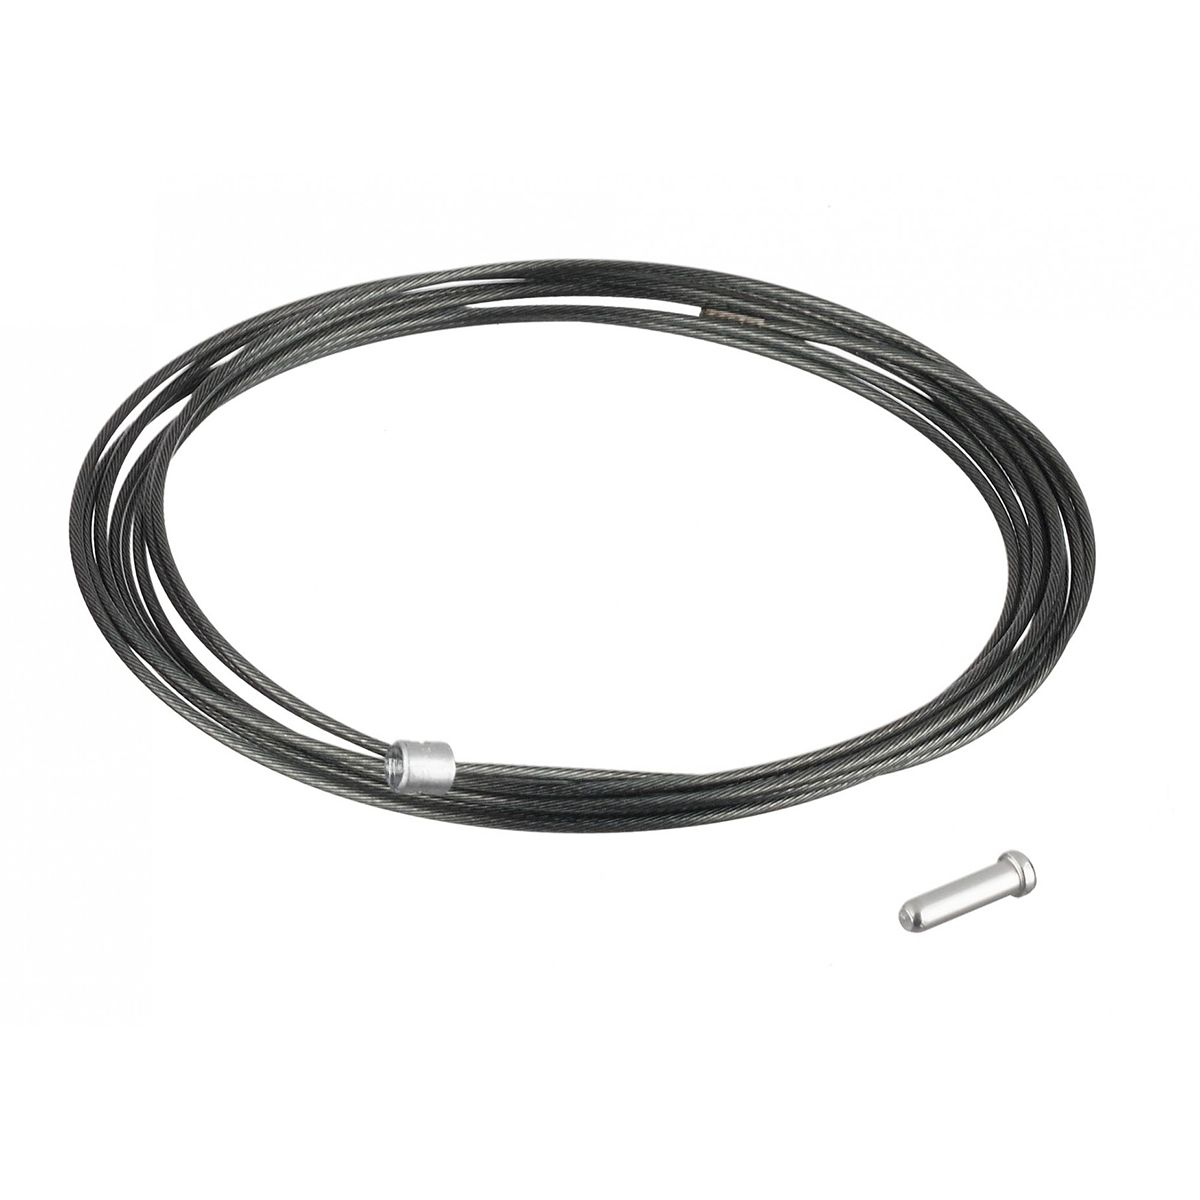 Optislick shift cable